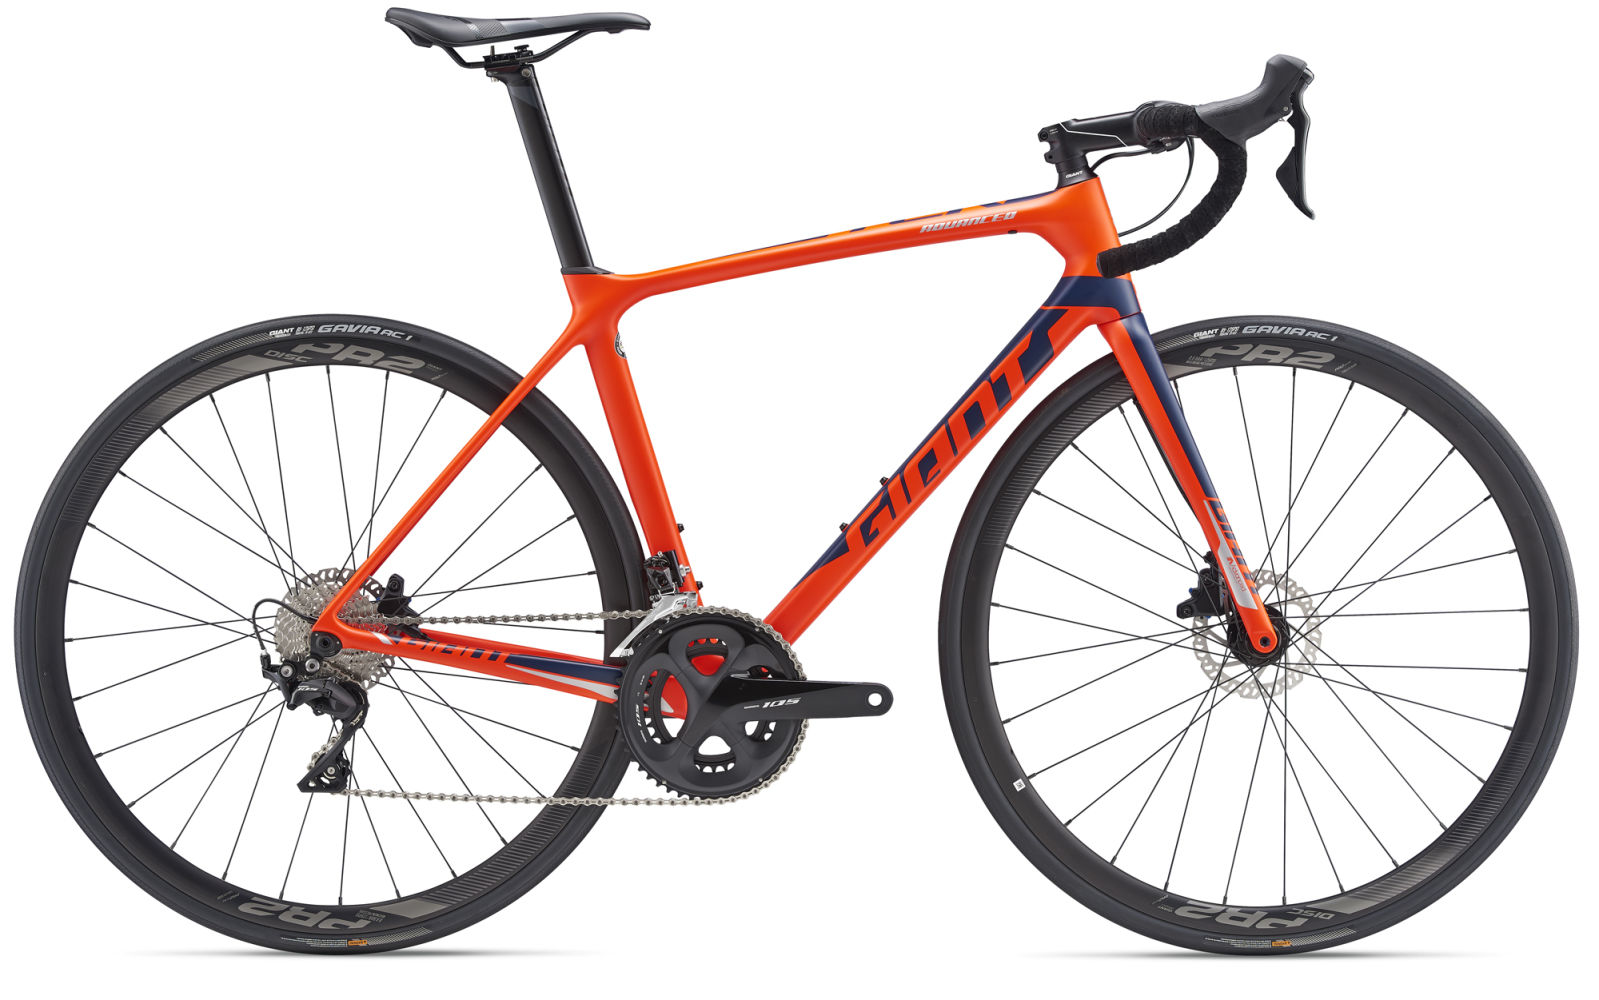 4f82481fddb My Bike Journey…just started! Giant TCR Advanced 2 Disc 2019 – DR KOH